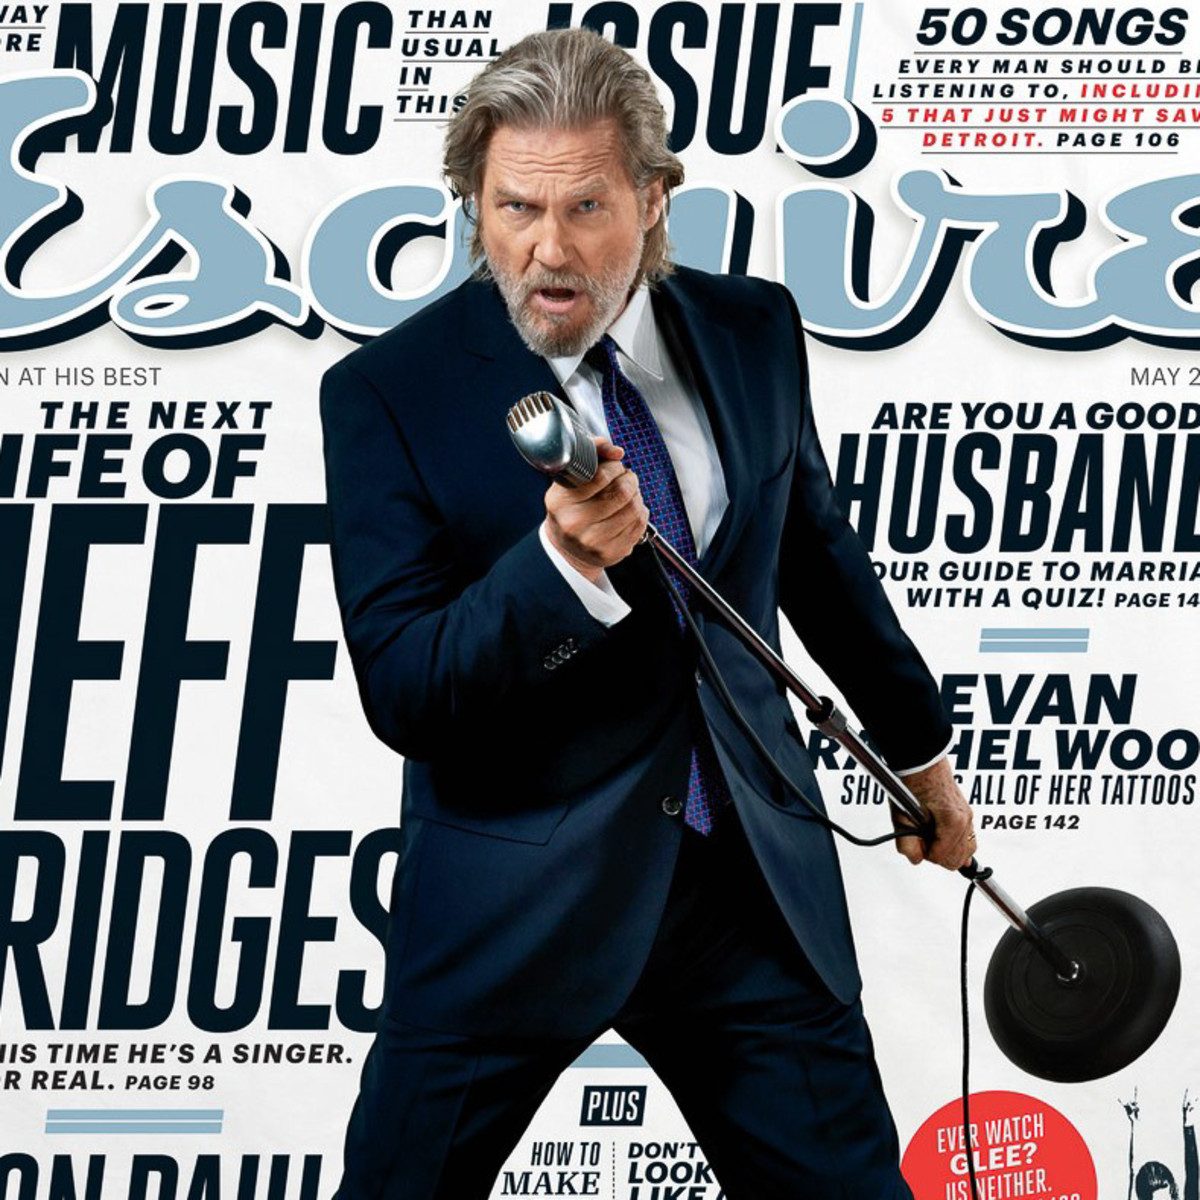 News_Esquire_May 2011 cover_Jeff Bridges